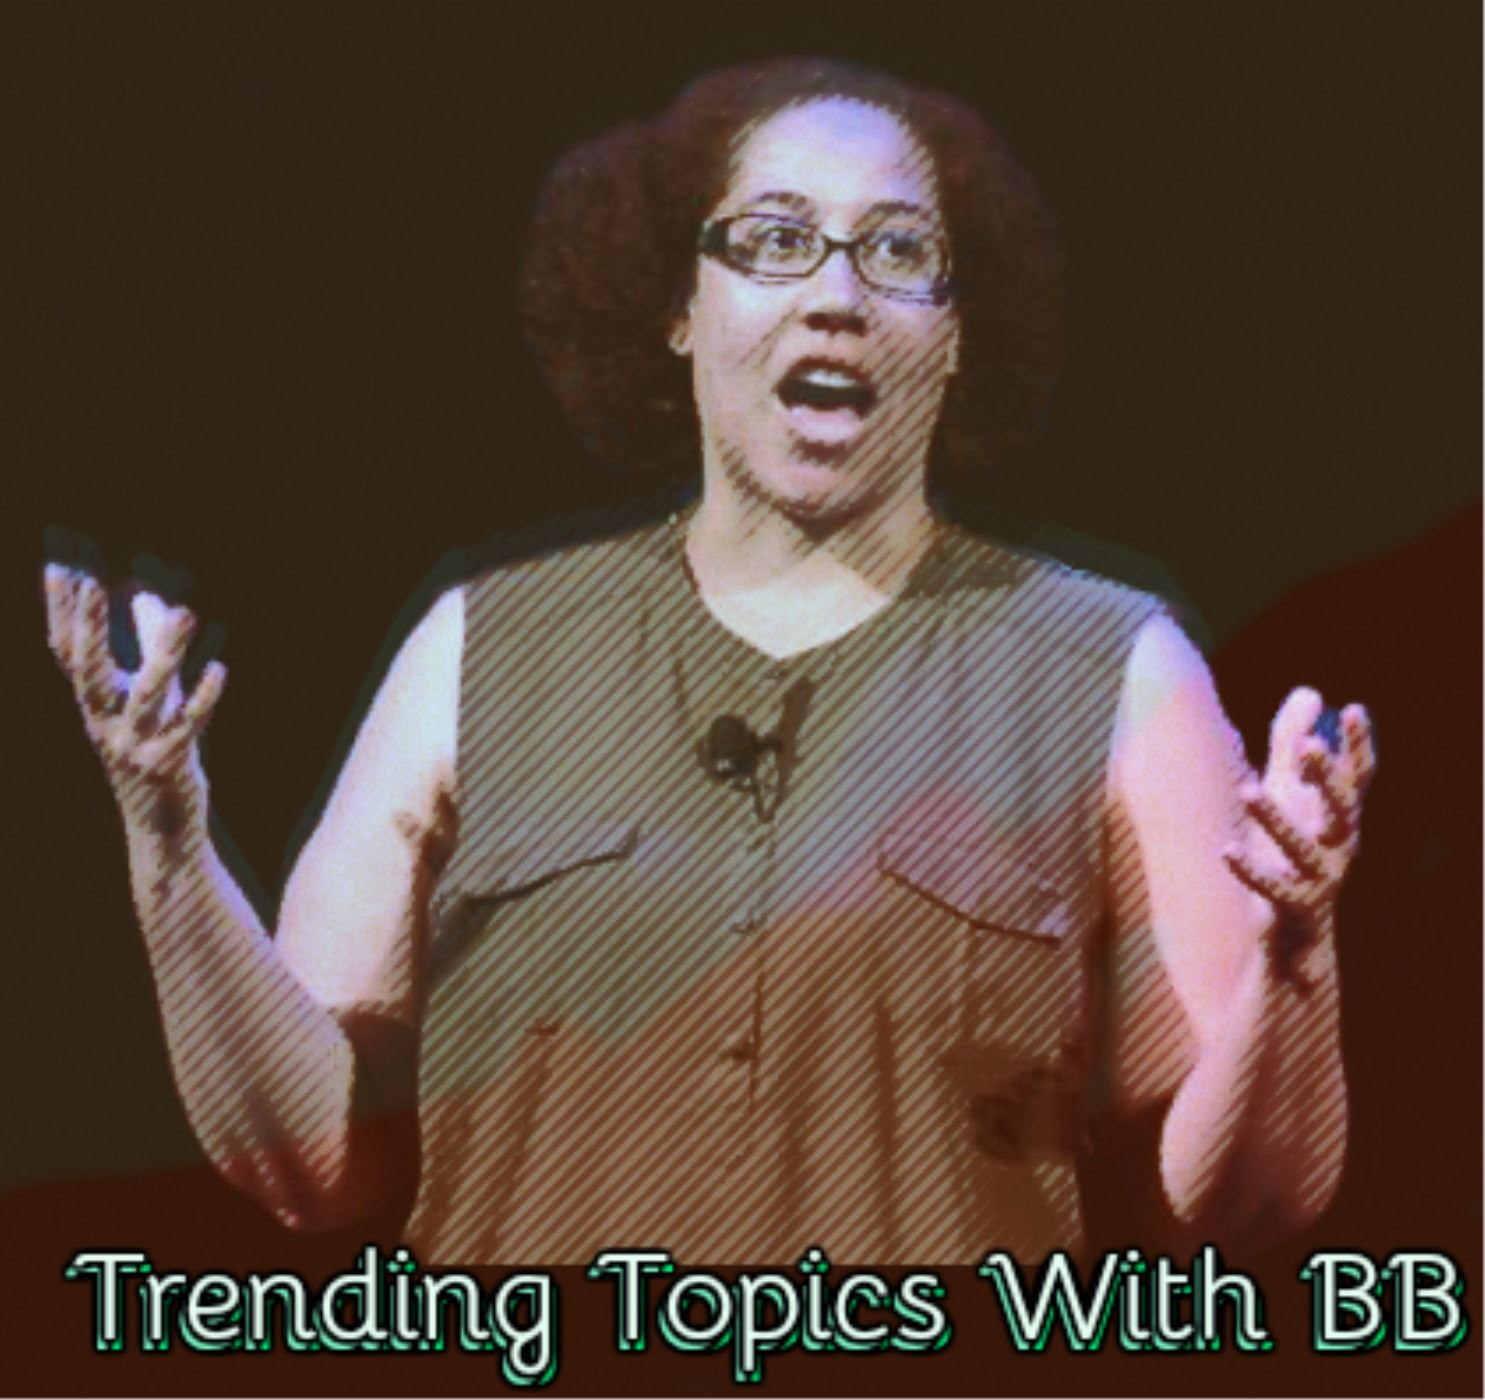 Trending Topics with BB